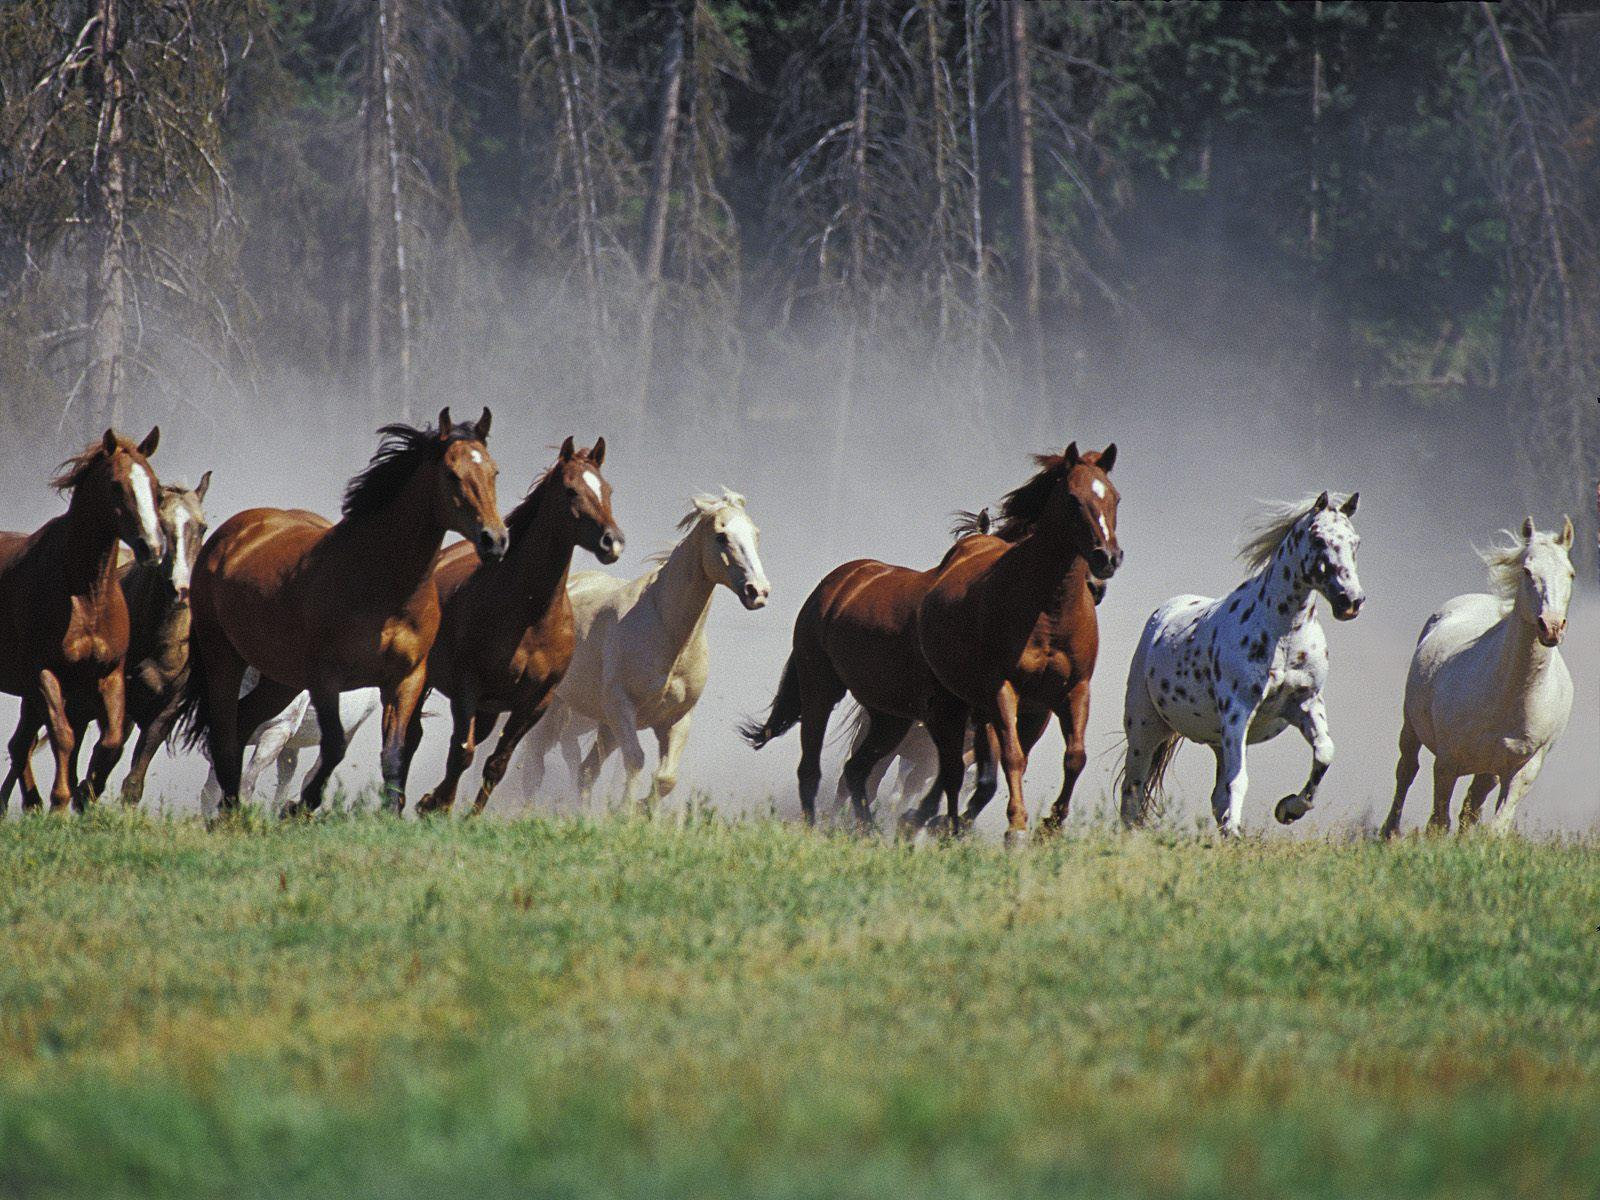 Best Beautiful hd wallpapers for Desktop Basckground: Horse wallpapers hd